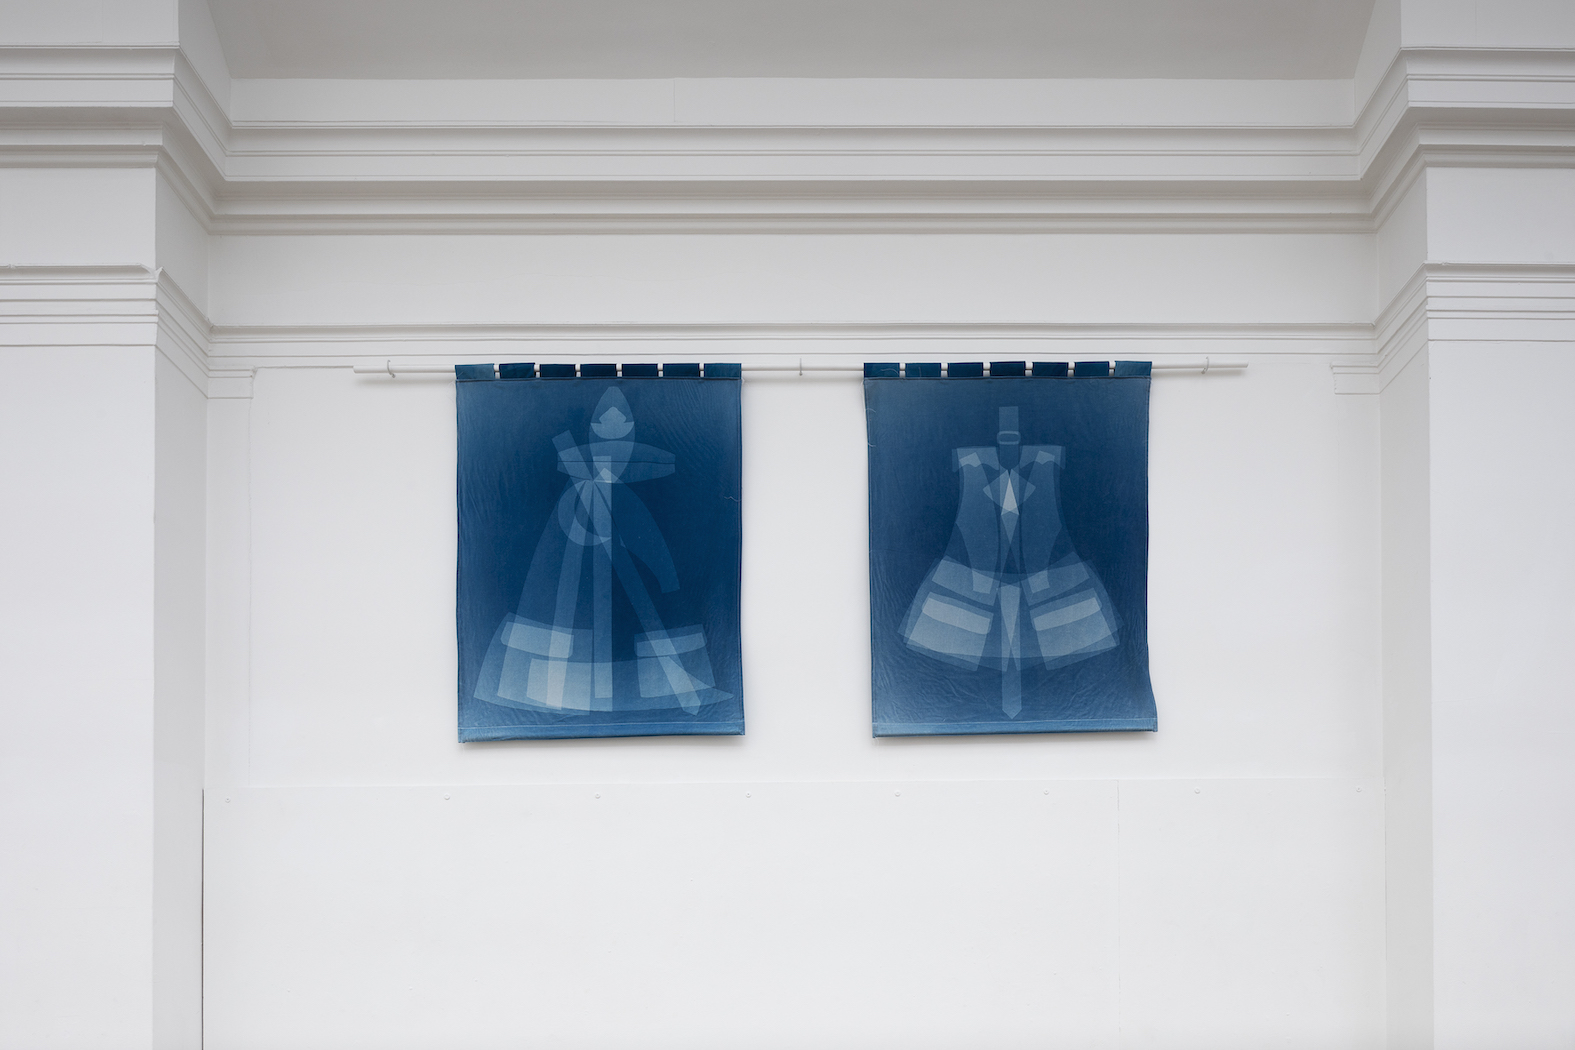 16 Brenda, Marion, 2019, cyanotype on fabric, 102 x 76 cm each, Worthing Museum, photo Andrew Youngson